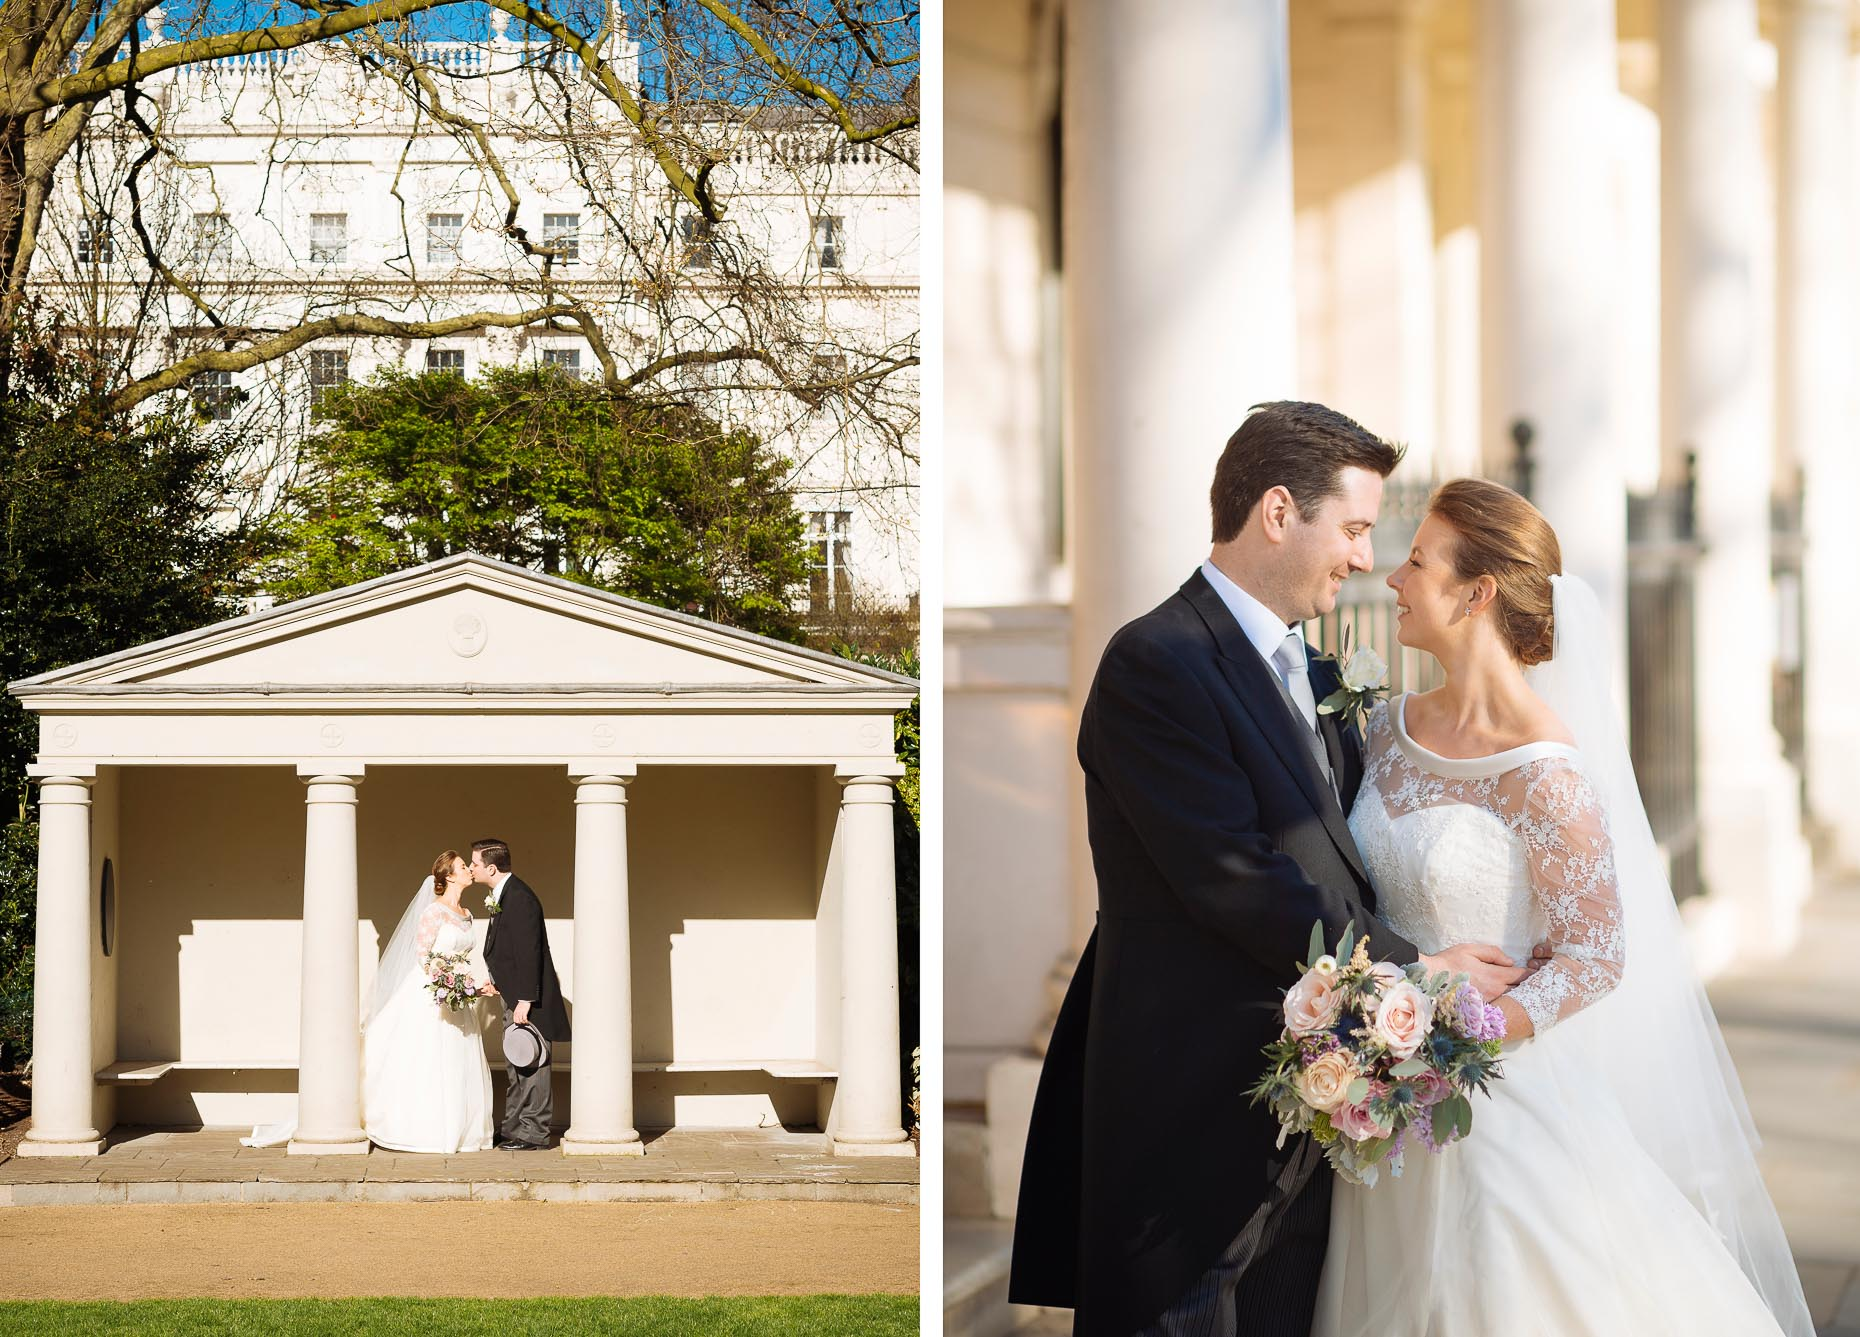 belgrave-square-garden-london-wedding-photography-laura-14